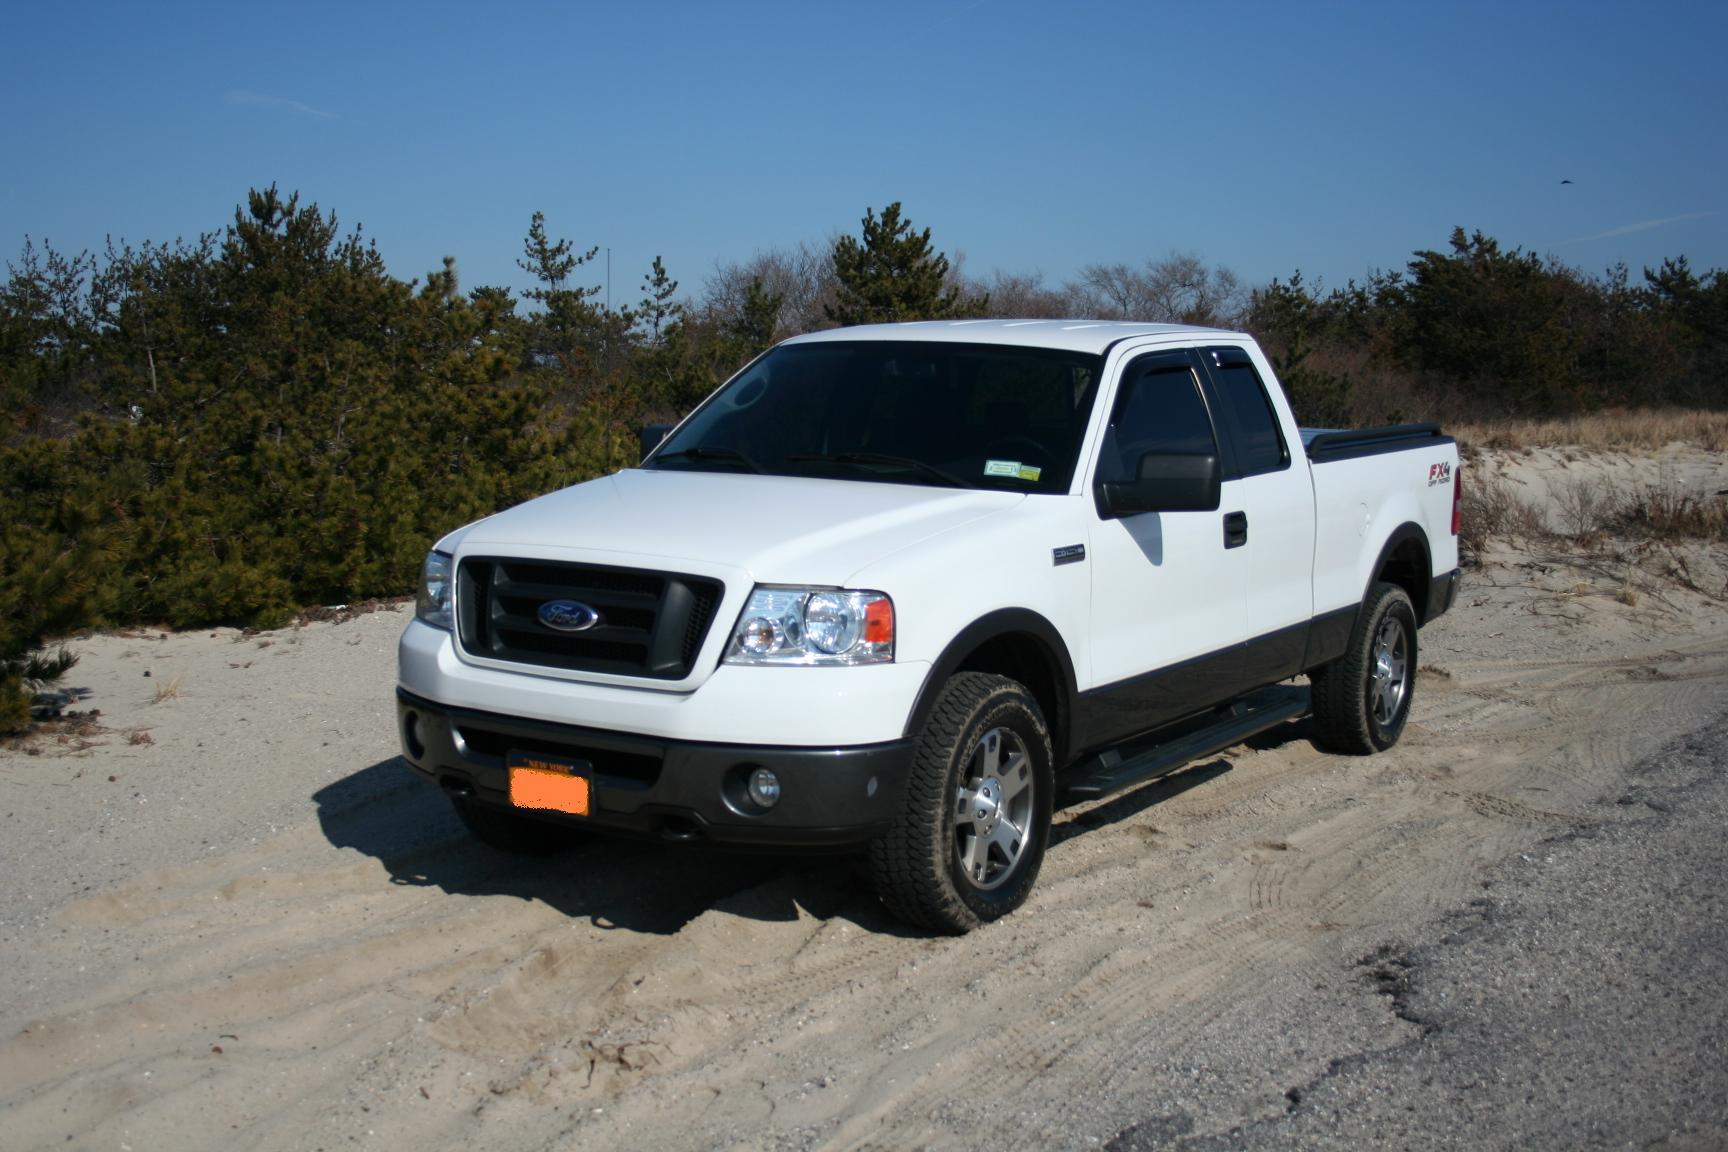 Jkstang78 2006 Ford F150 Super Cabfx4 Styleside Pickup 4d 6 1 2 Ft Specs Photos Modification Info At Cardomain